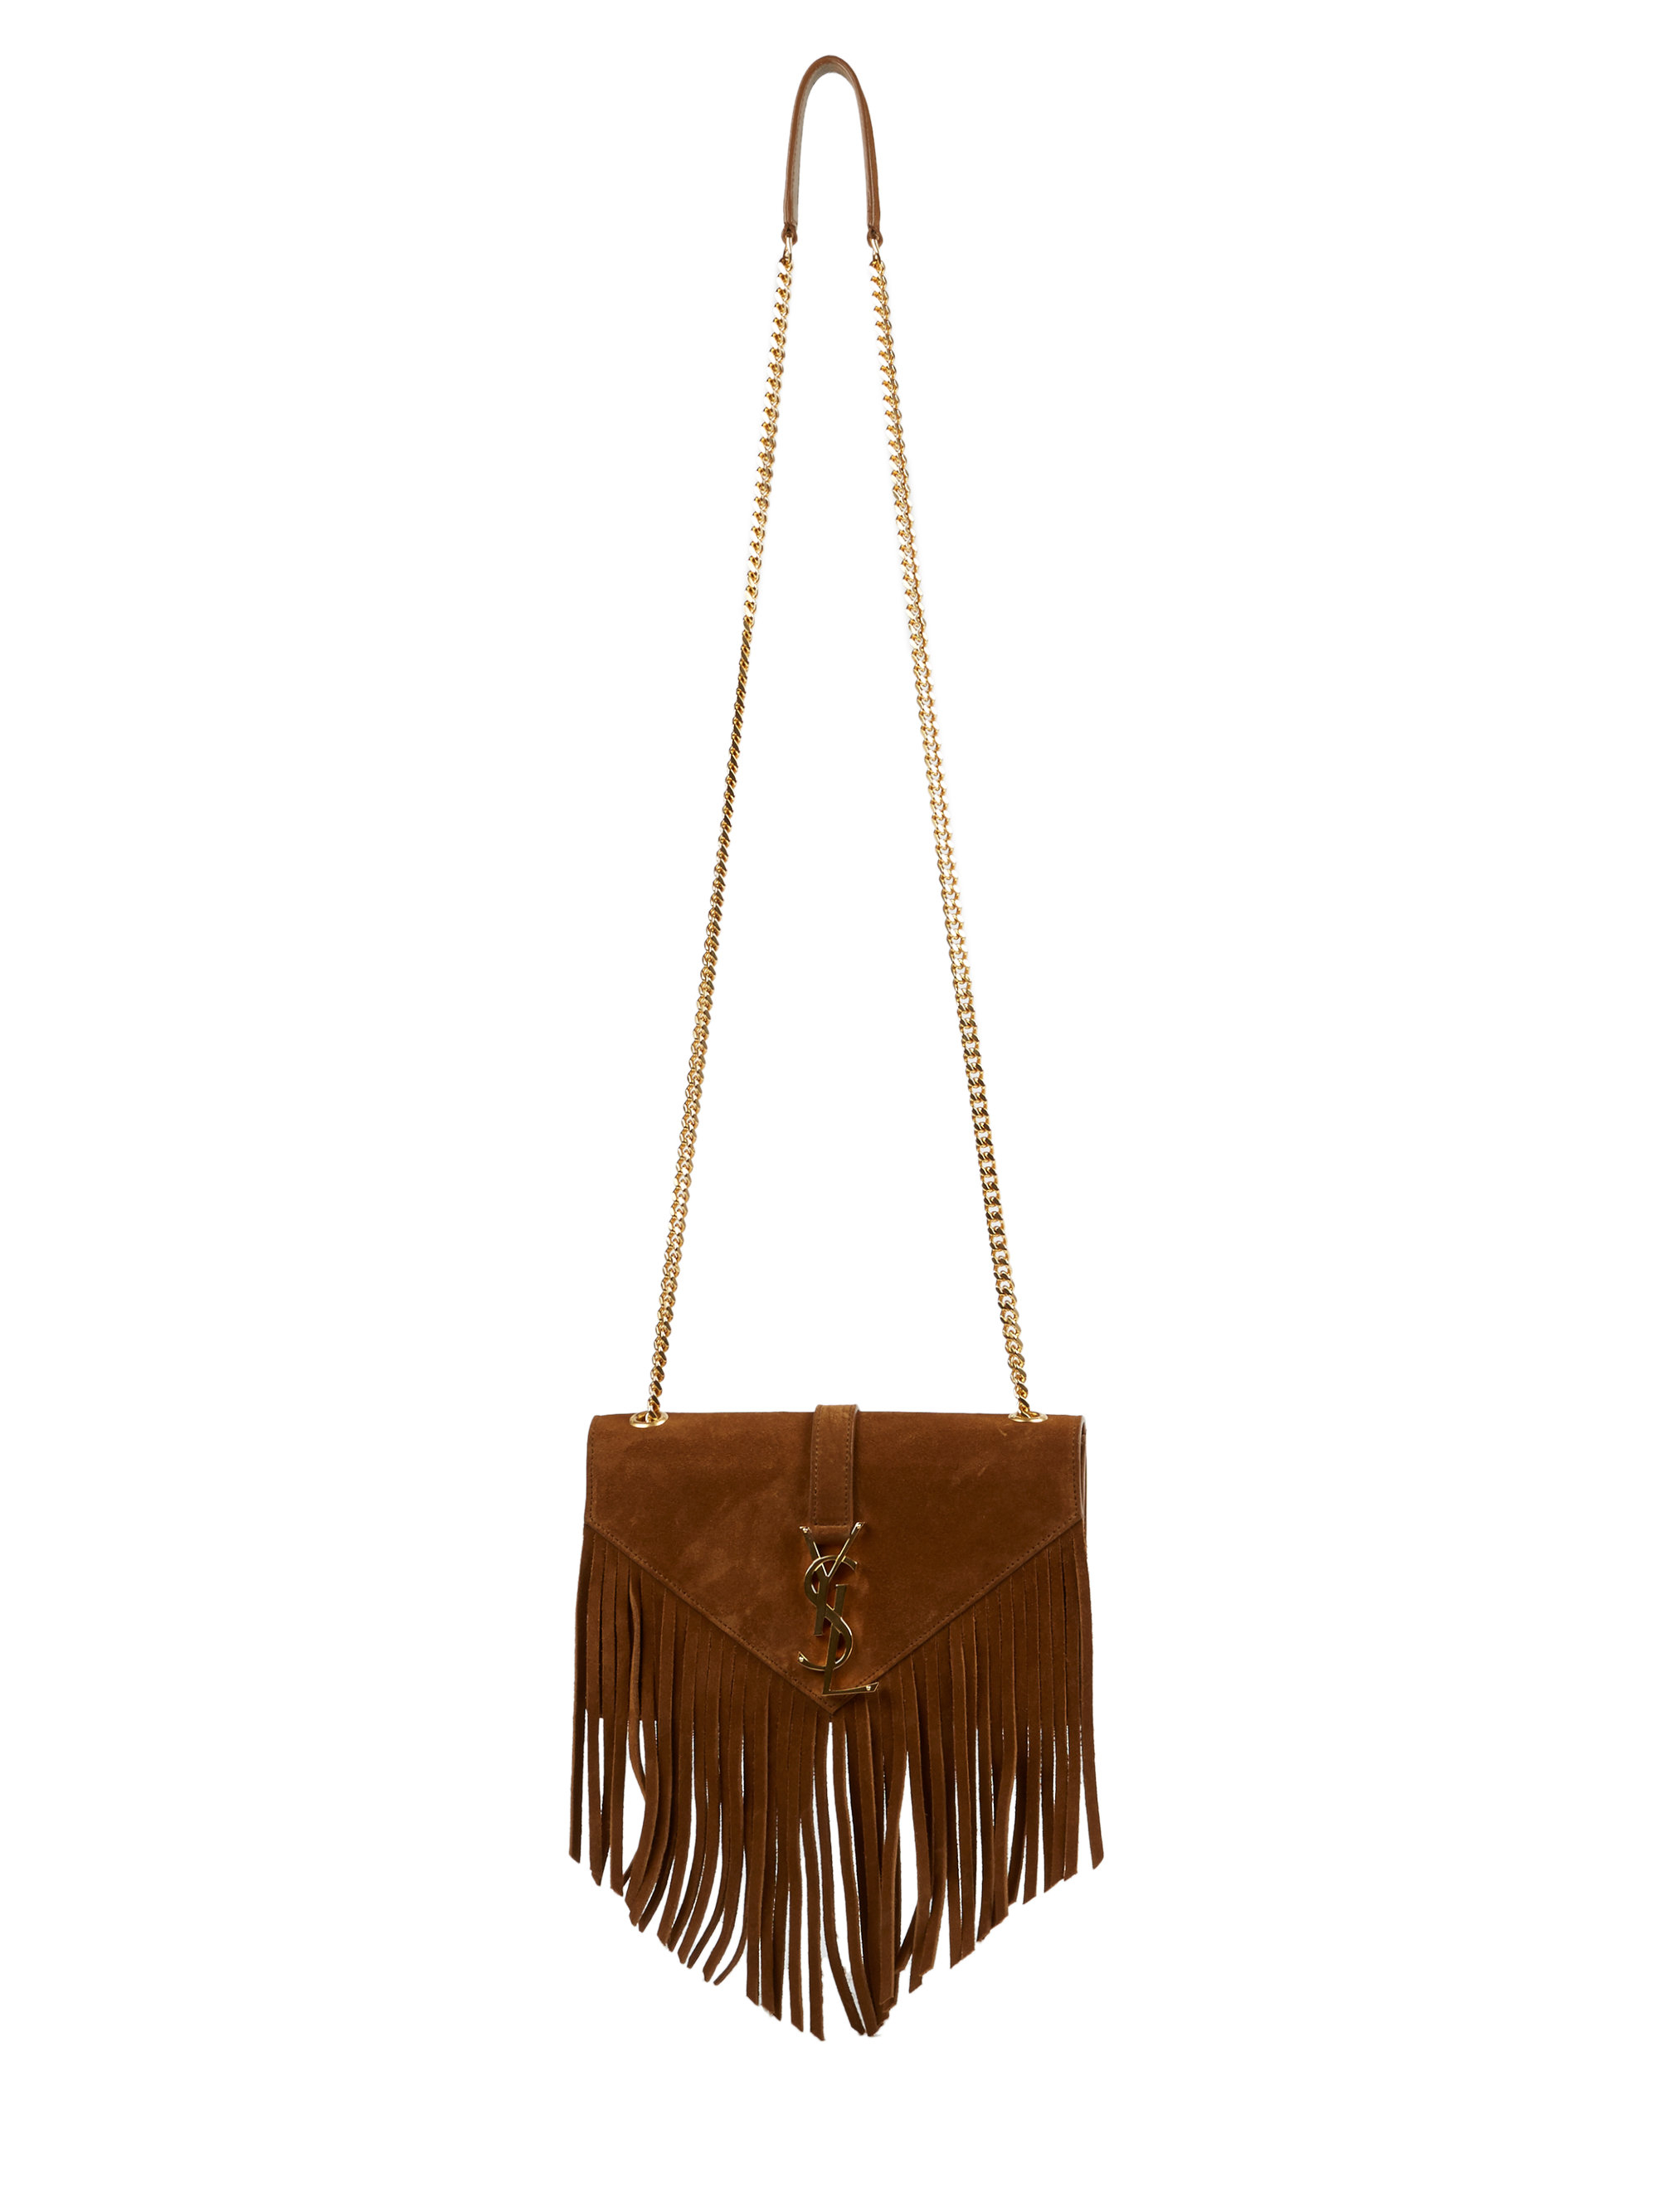 About Bag with Fringe Bag with Fringes are a wise choice to tote your belongings in chic style. Select the size from the listed items to meet your requirements.